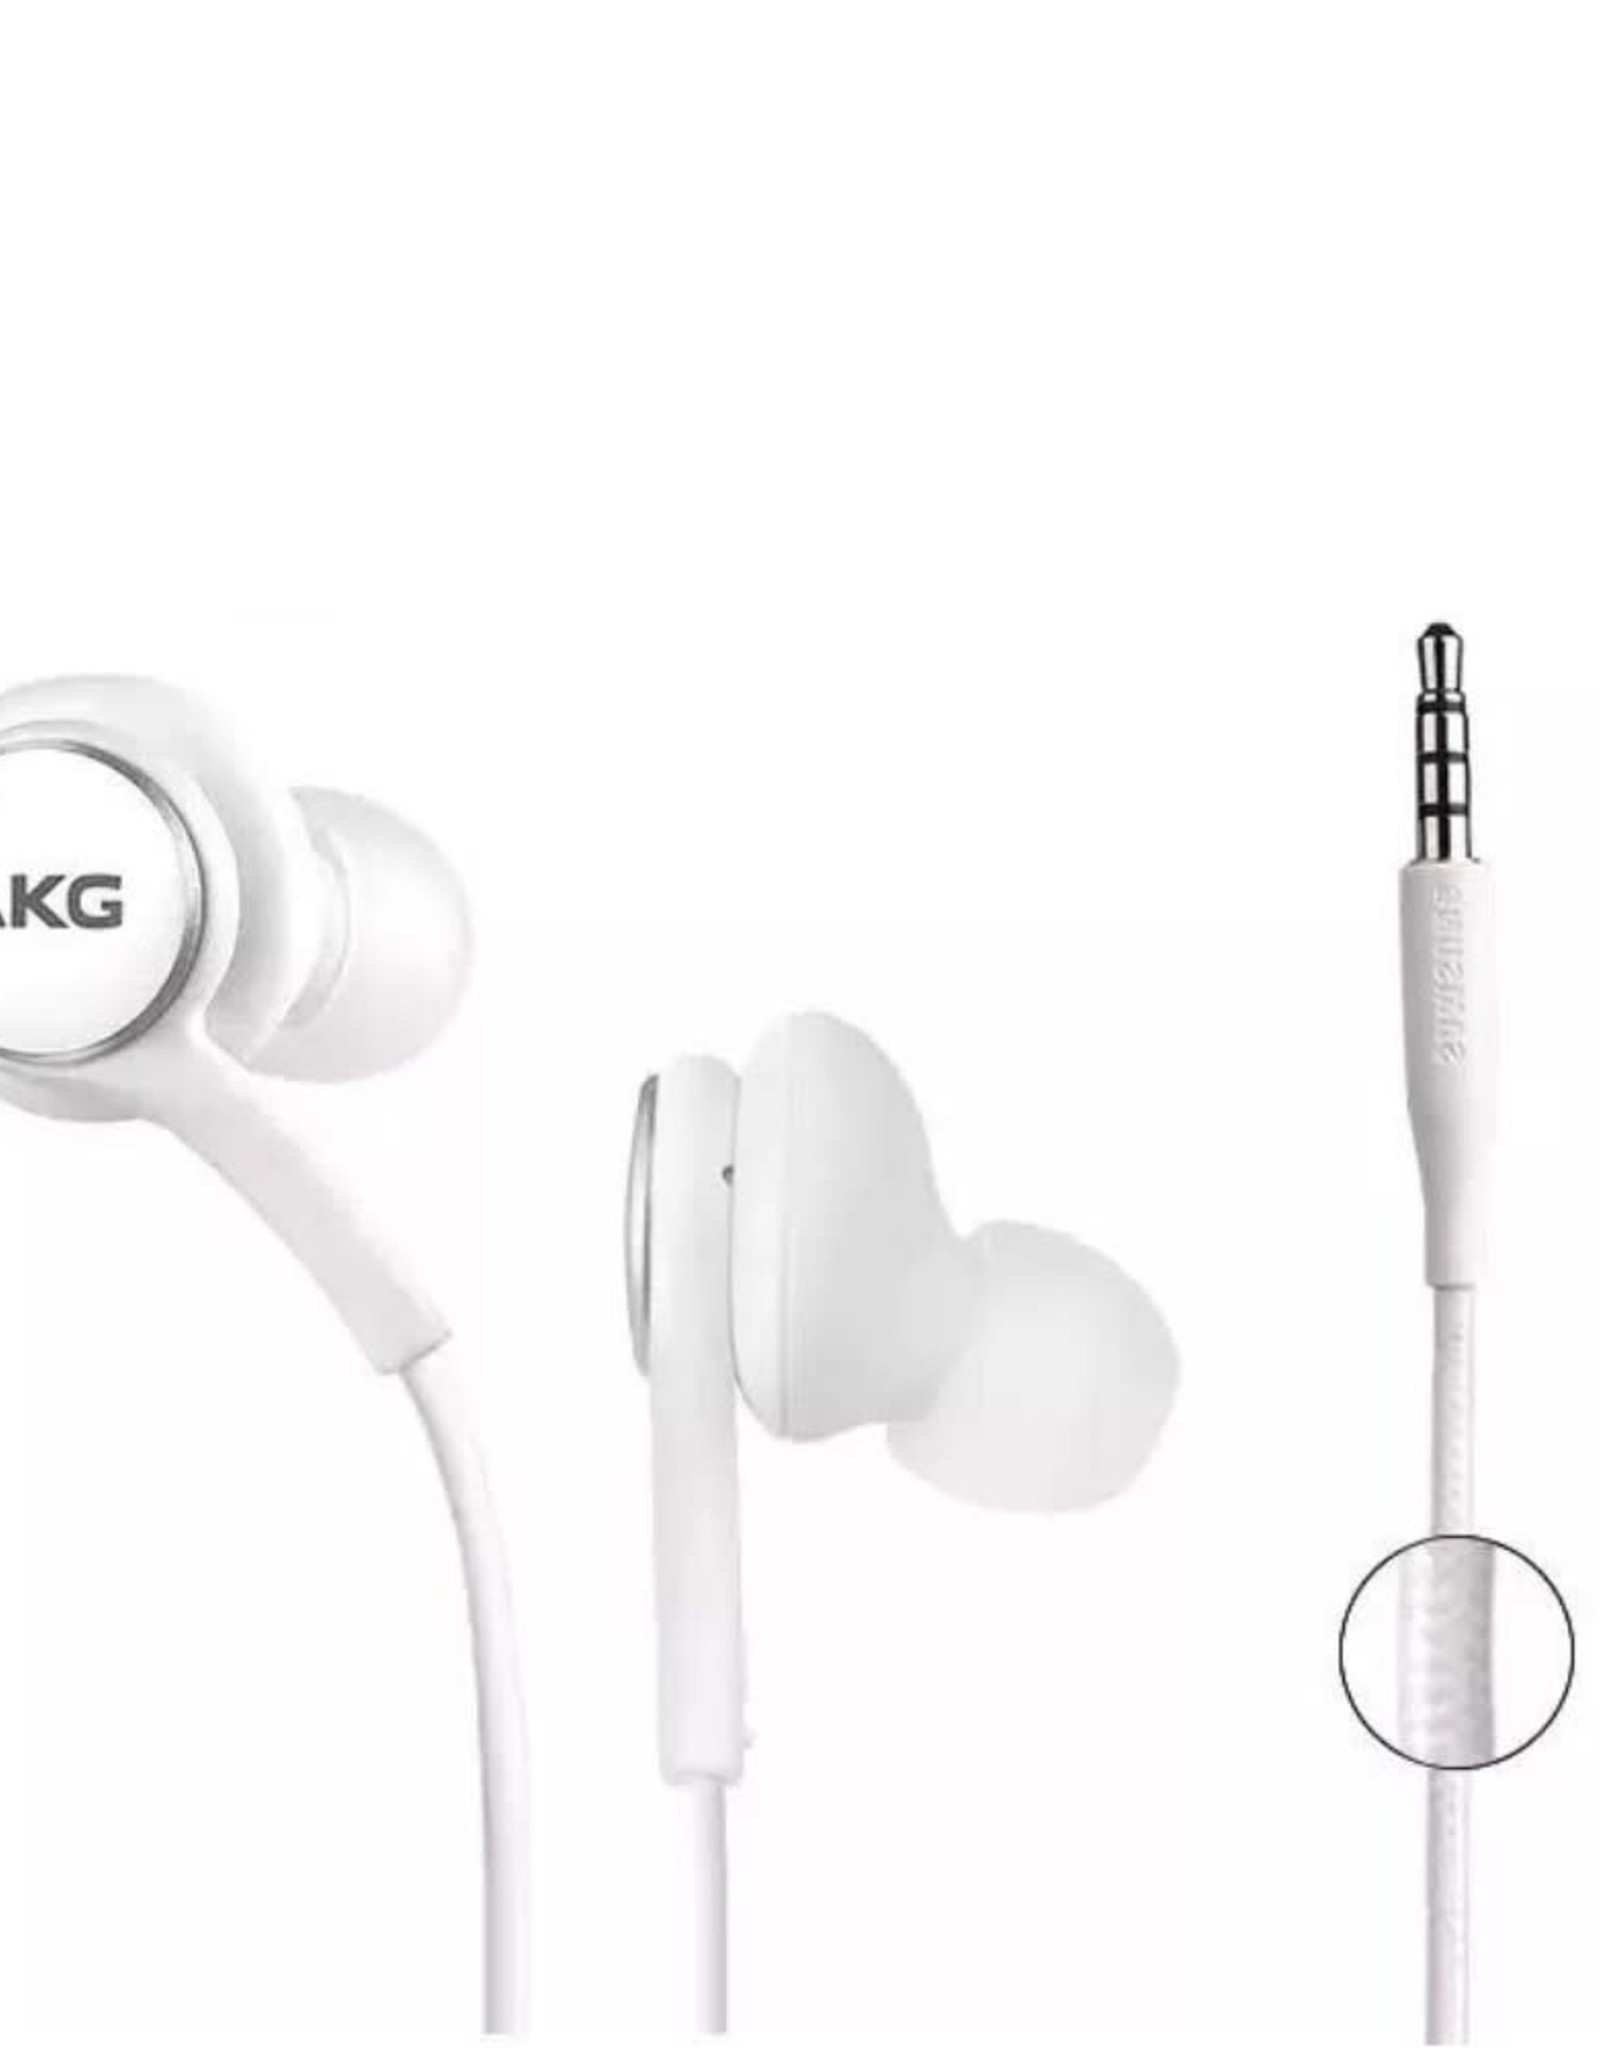 Samsung AKG EO-IG955 Stereo Handsfree Earphone Headphone with Mic and Remote Control - White